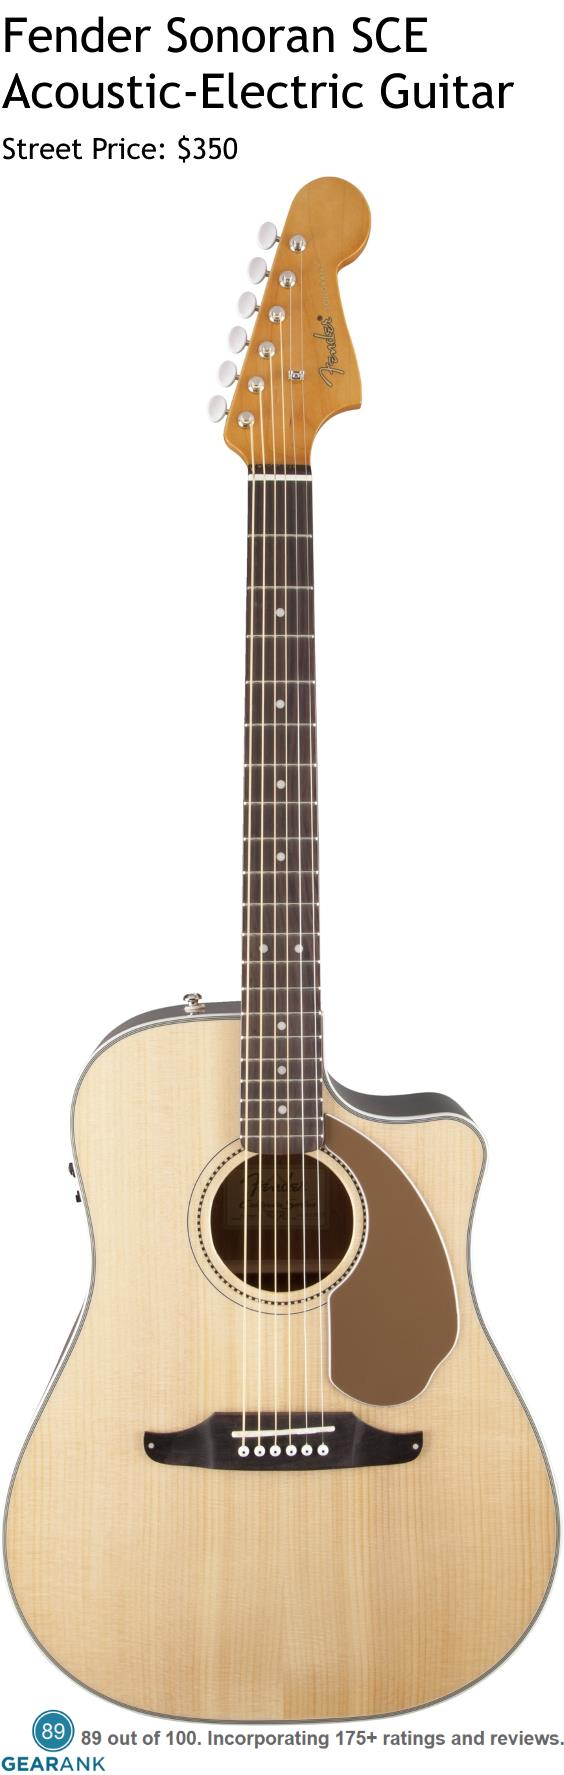 small resolution of fender sonoran sce acoustic electric guitar it has a solid spruce top with scalloped x bracing and mahogany back and sides for the electronics it uses